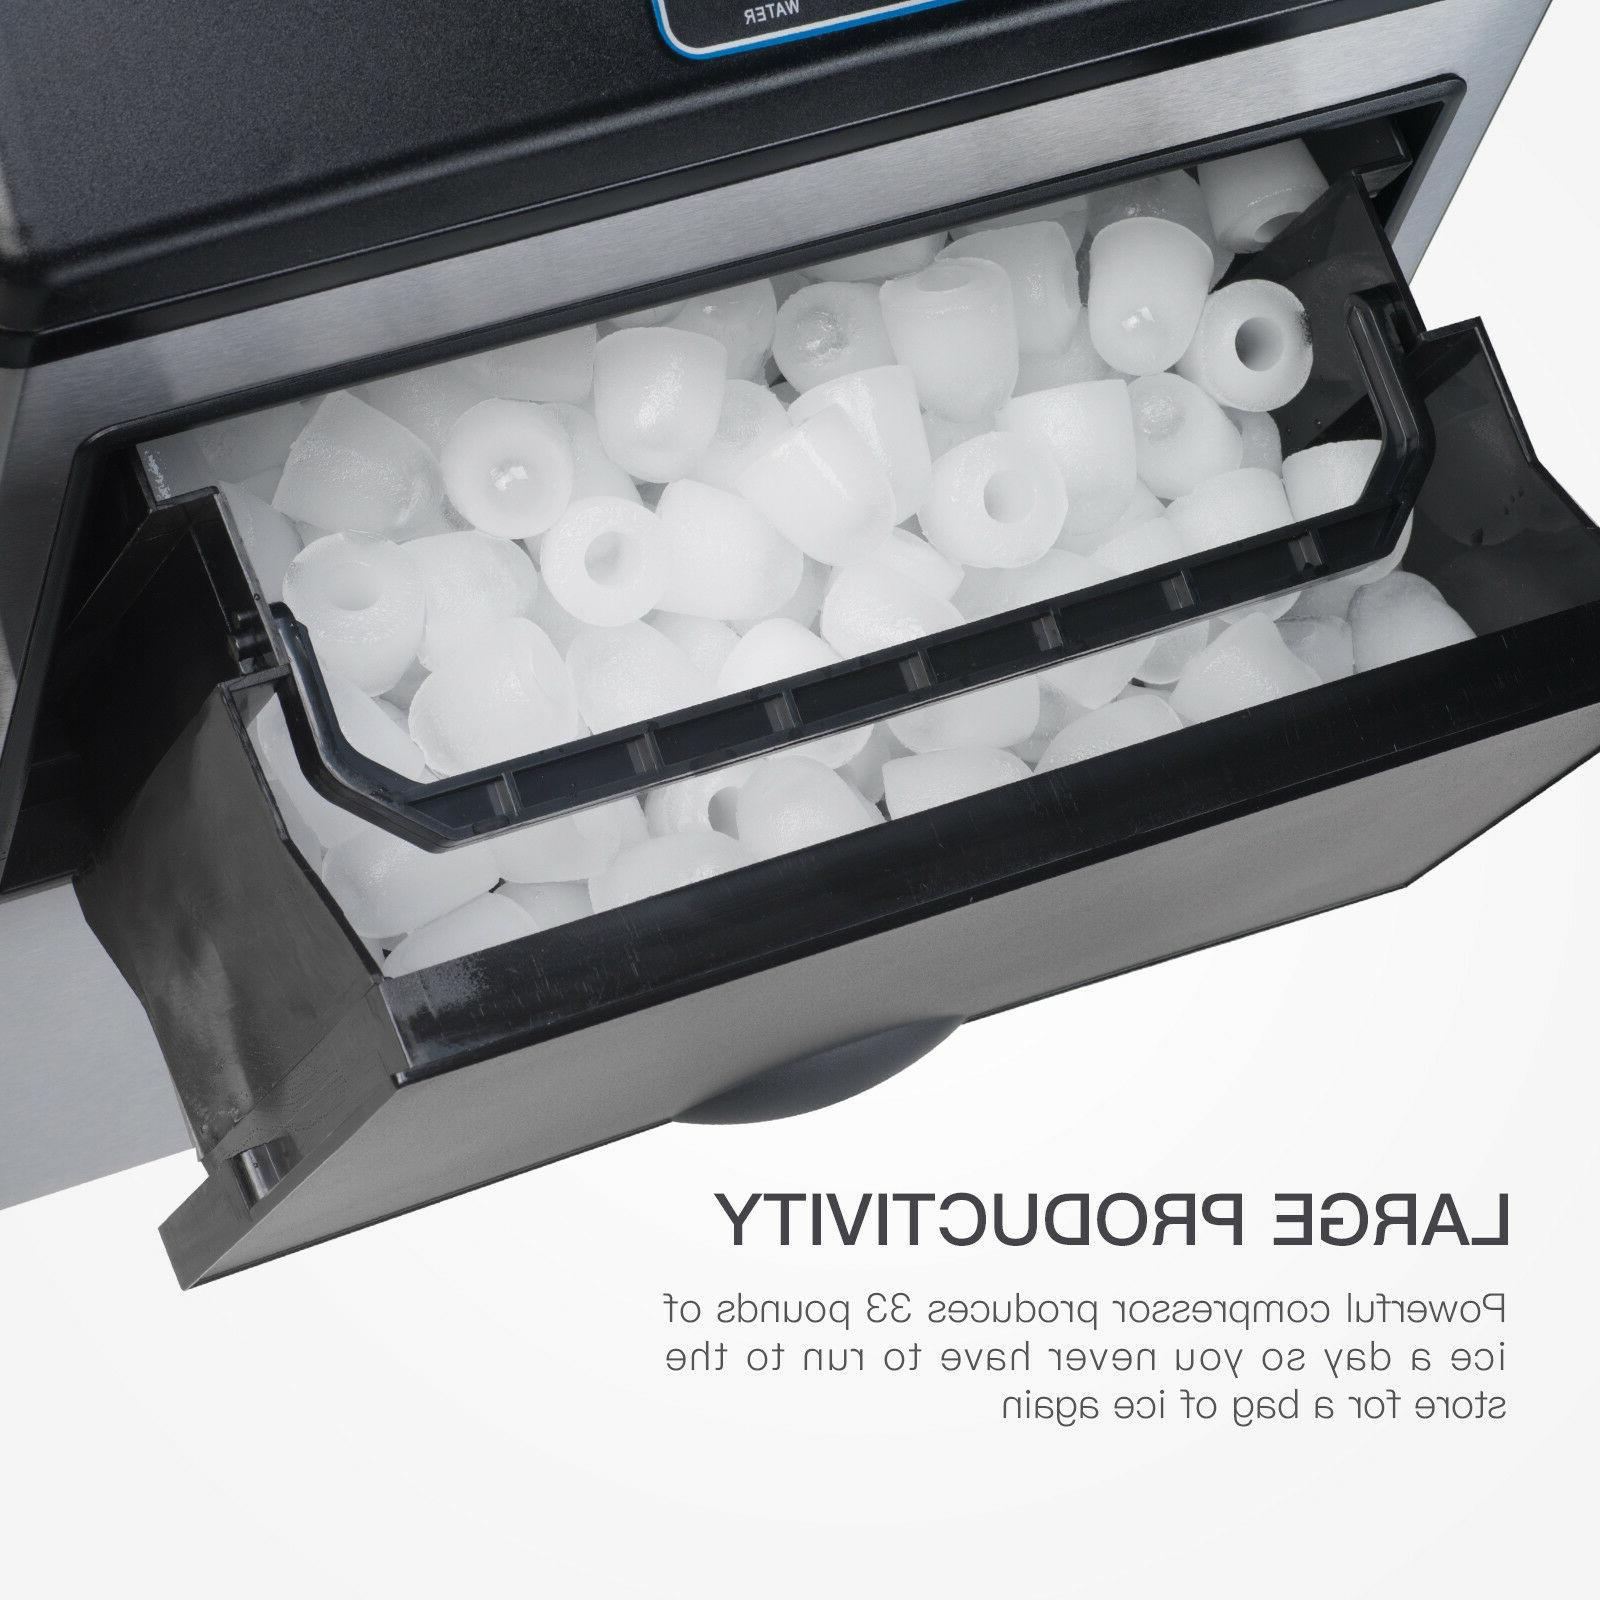 2in1 Built-In 5 Water Ice Maker Countertop Stainless Steel